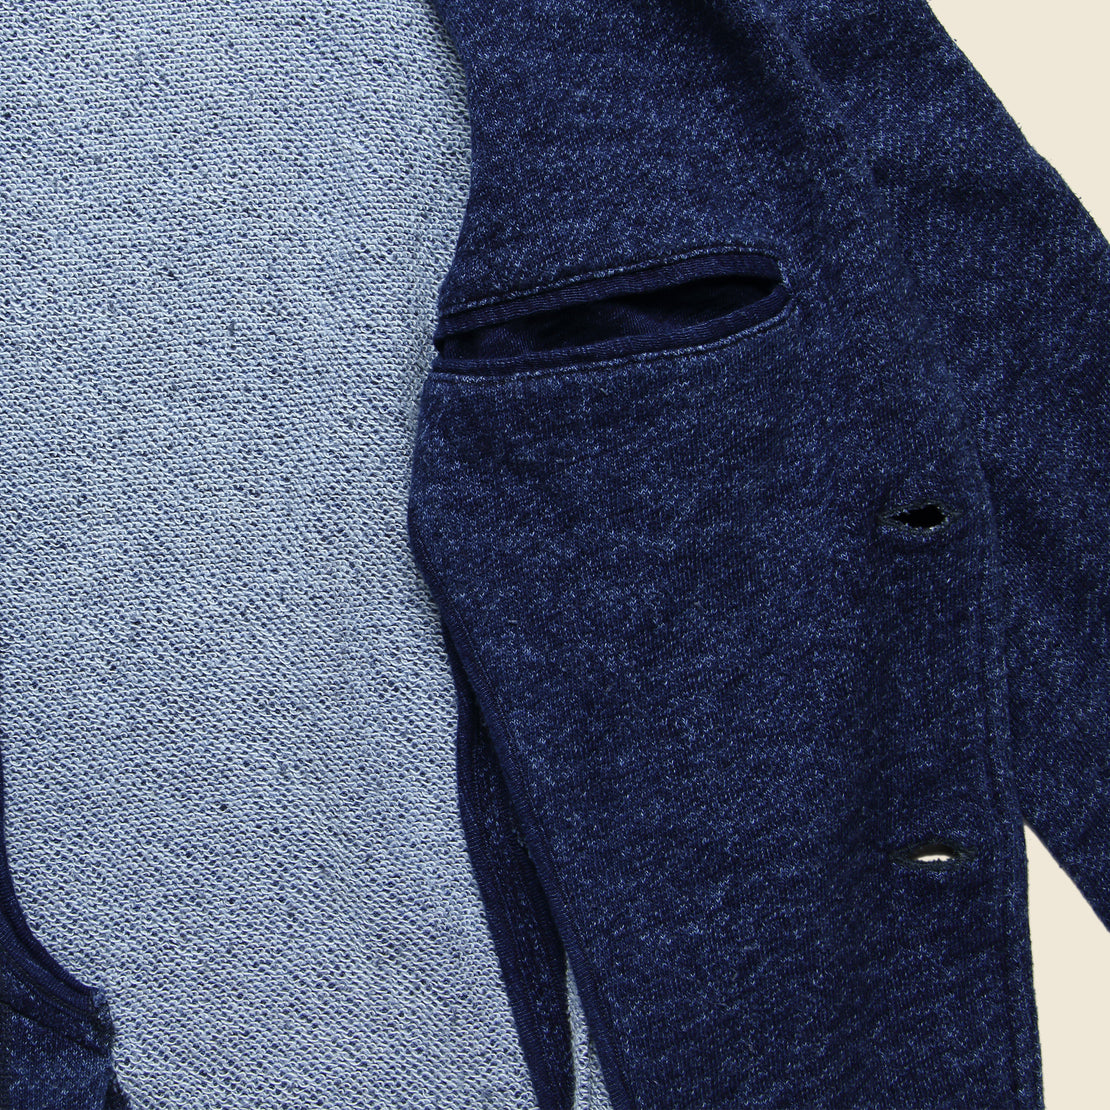 Marled Blazer - Indigo - Faherty - STAG Provisions - Suiting - Sport Coat